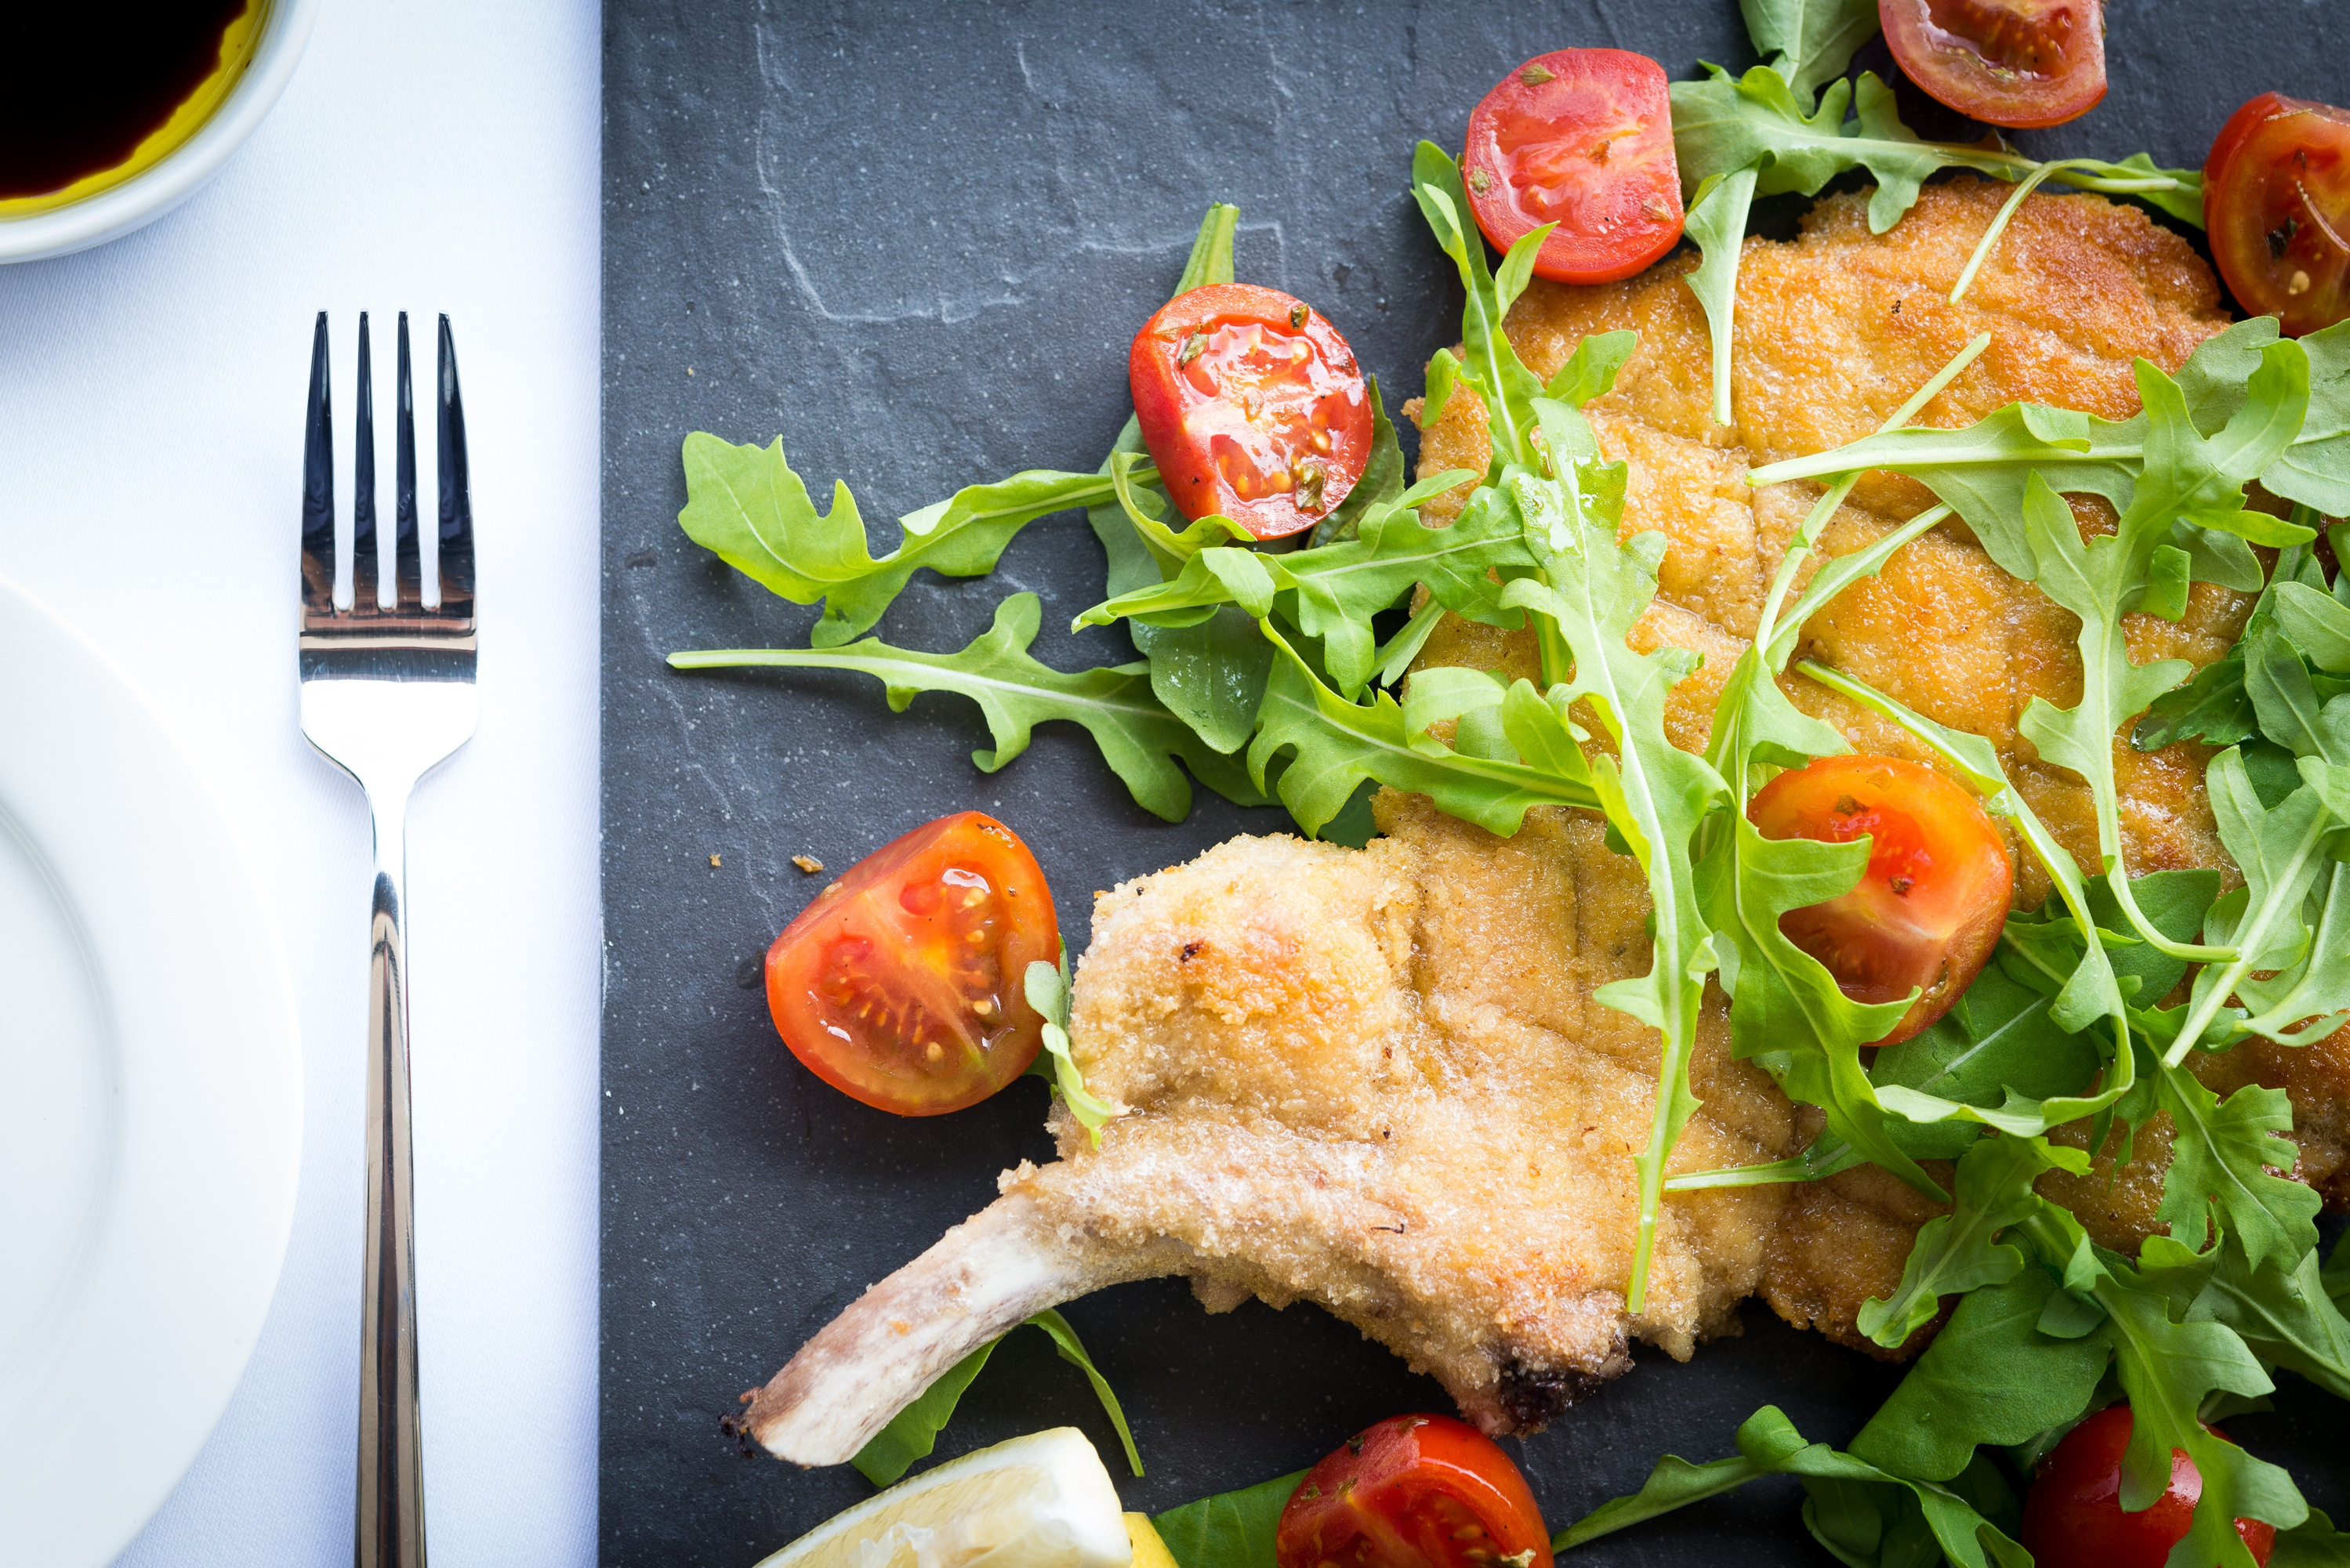 Spasso - Cotoletta alla Milanese pork chop Milanese Elephant ear with rocket salad and cherry tomatoes